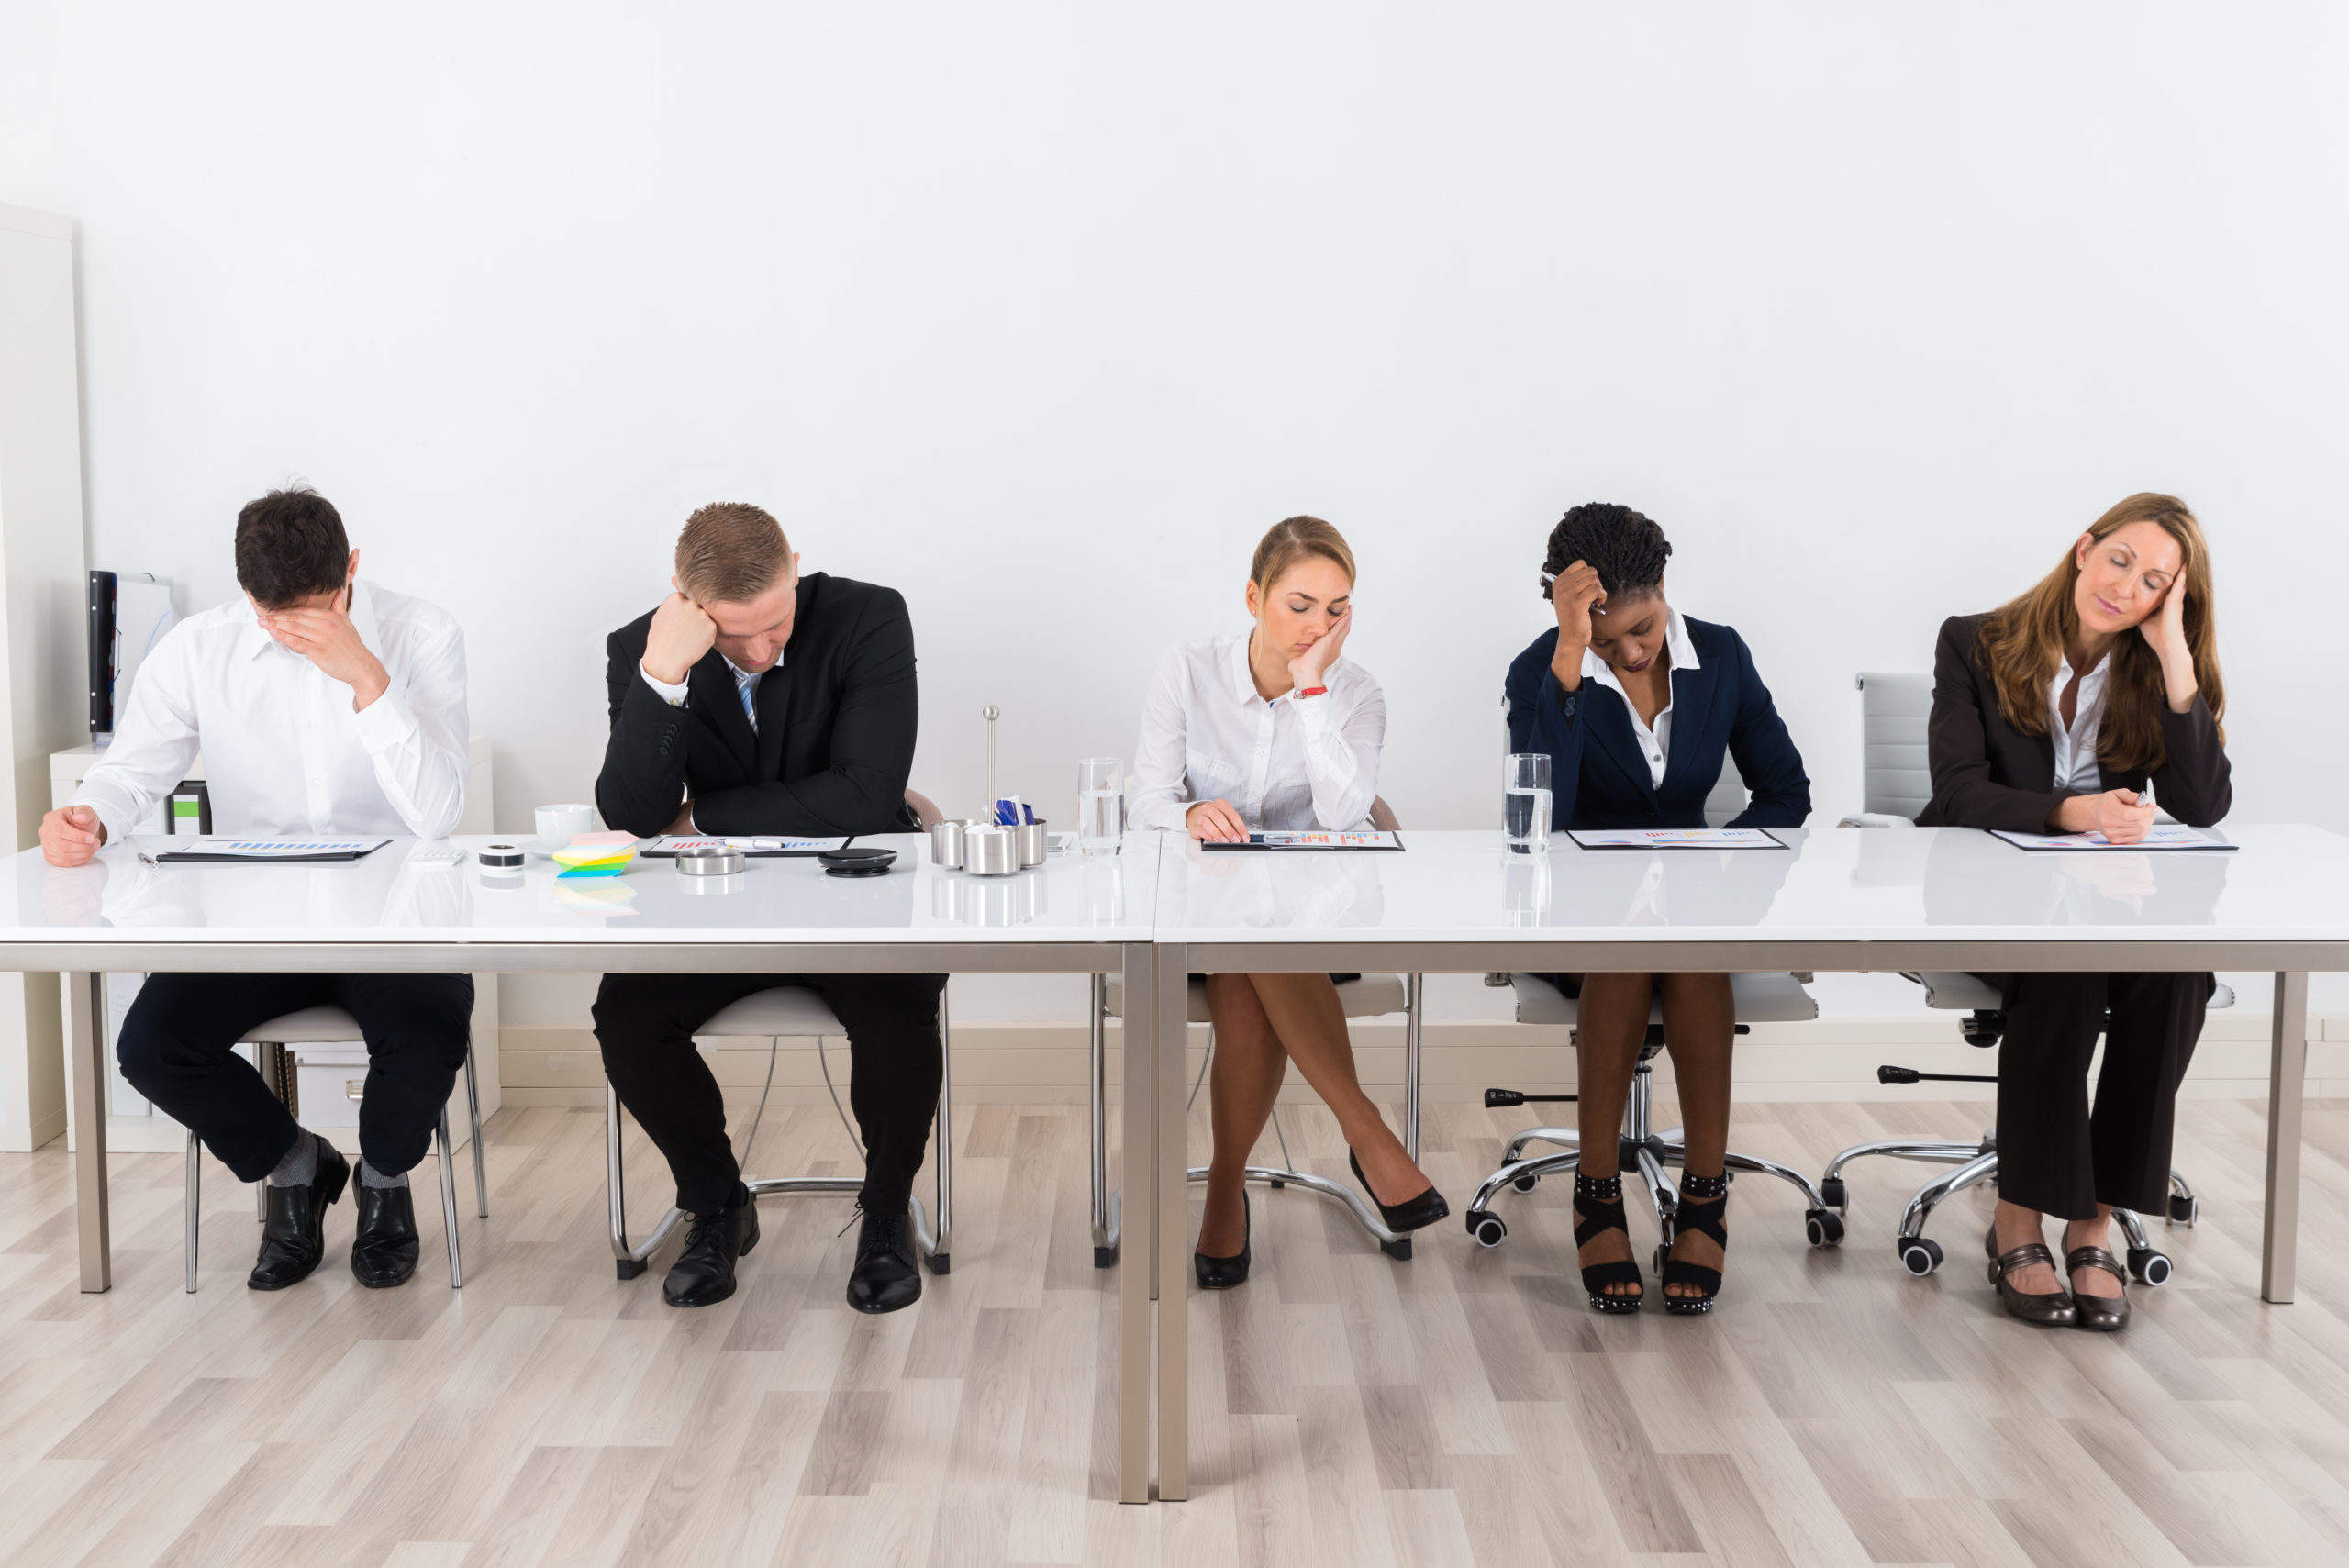 Why Are My Employees Not Engaged at Work?